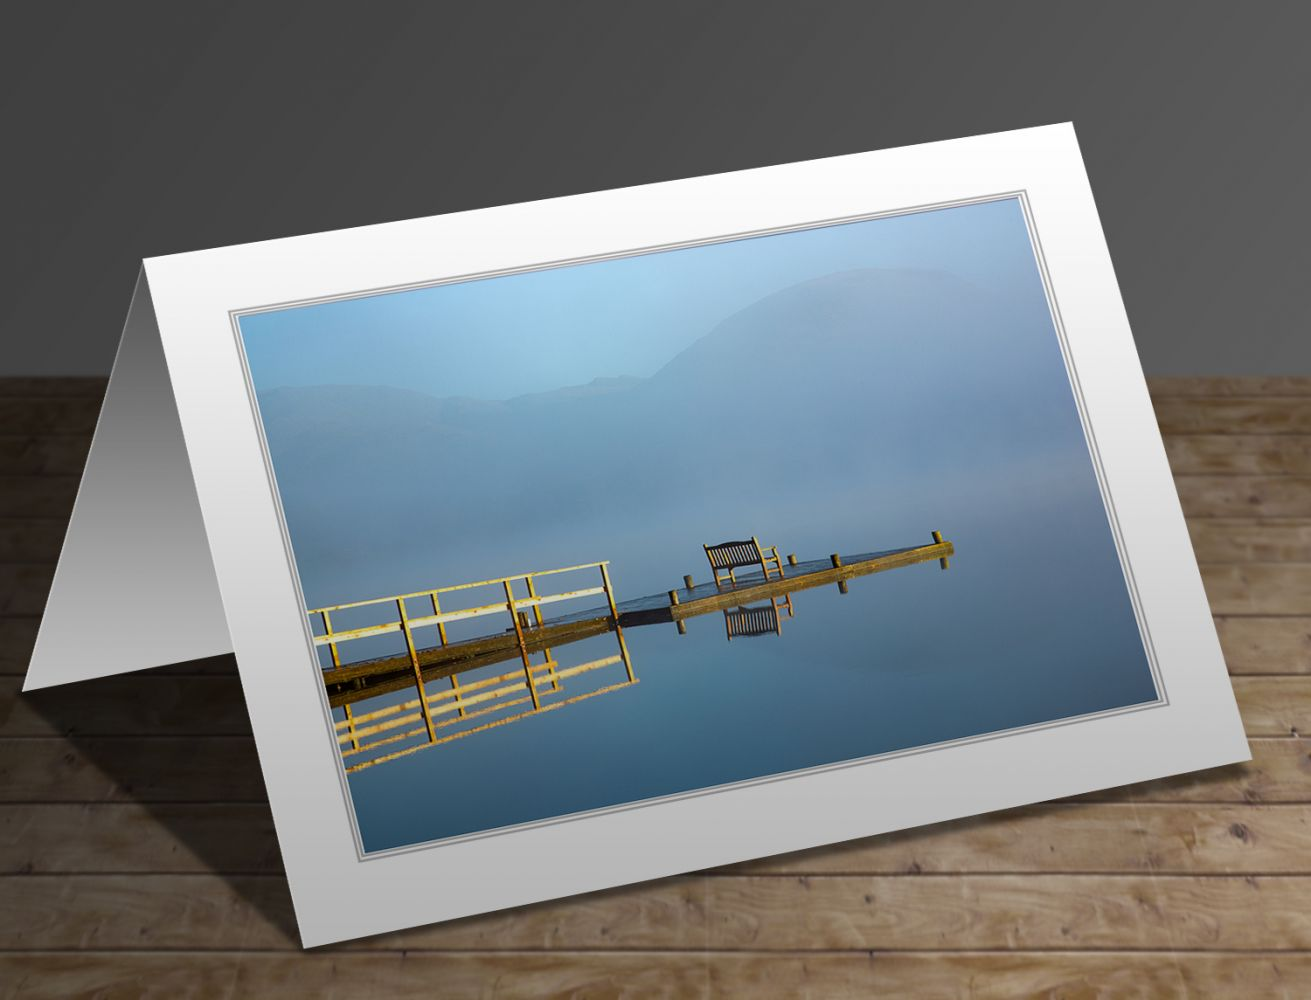 A greetings card containing the image Pullwood Bay Jetty Windermere by Martin Lawrence